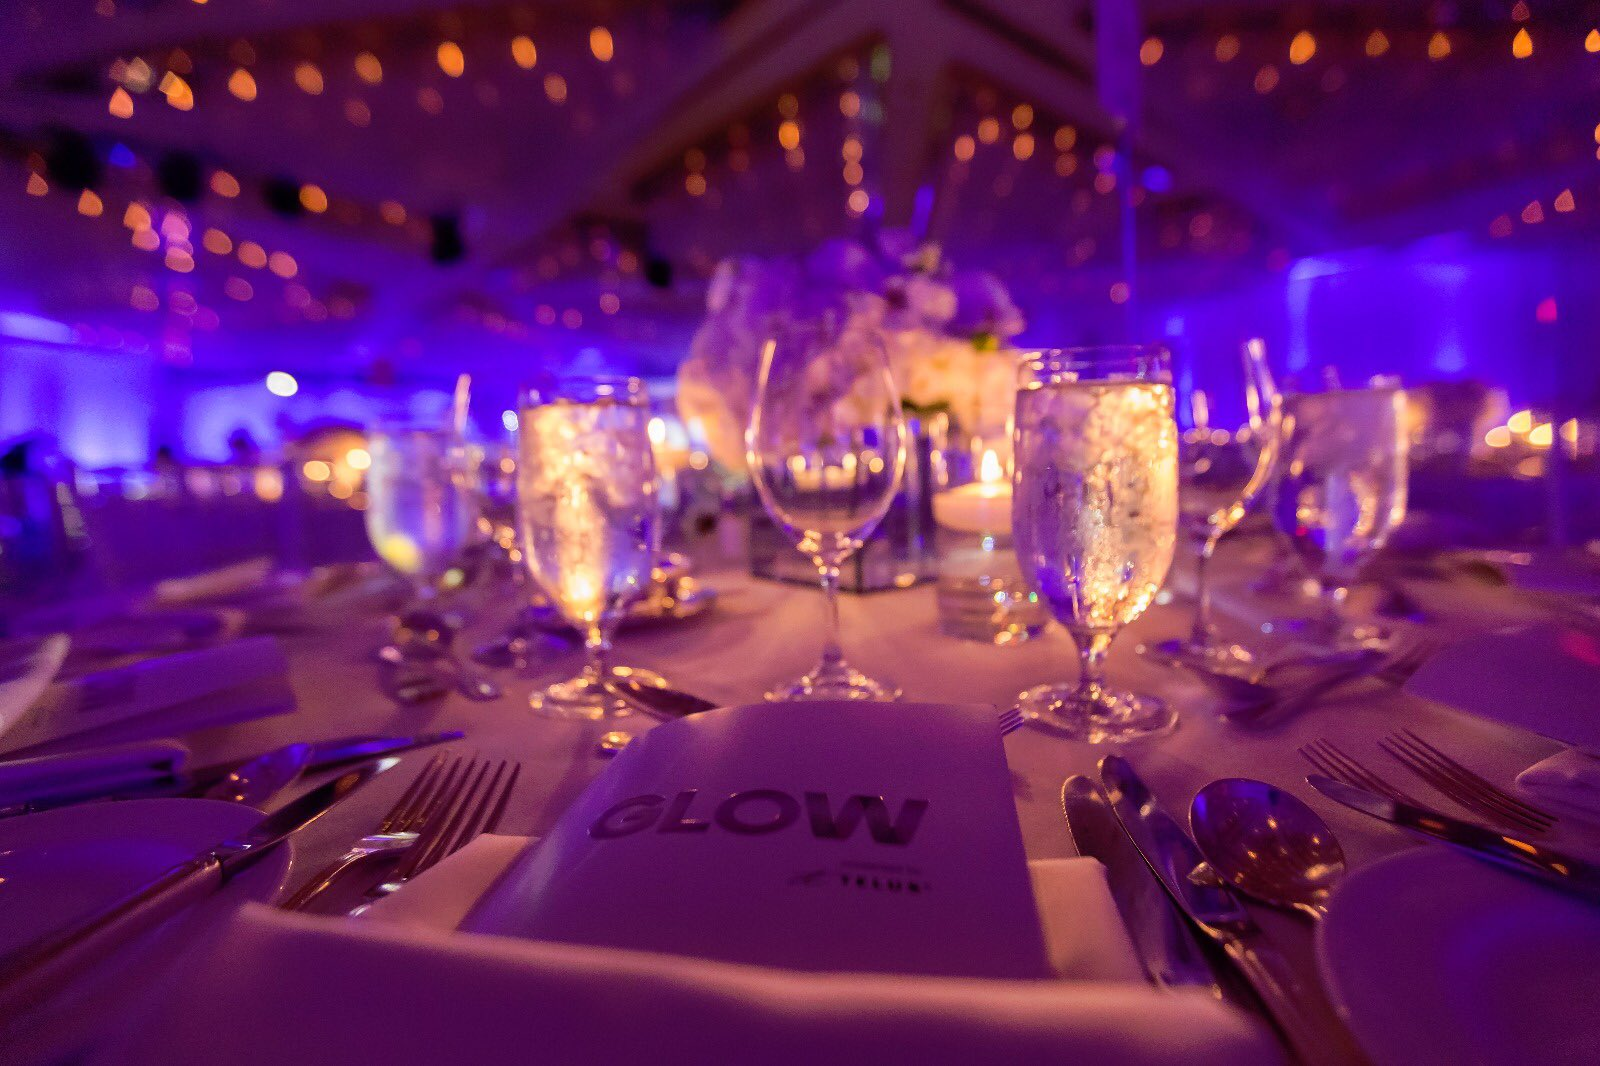 We are proud to support the #bcwomens #glowgala taking place this evening! Help to donate to this amazing cause! #RipeRides https://t.co/QGs4wi2H94